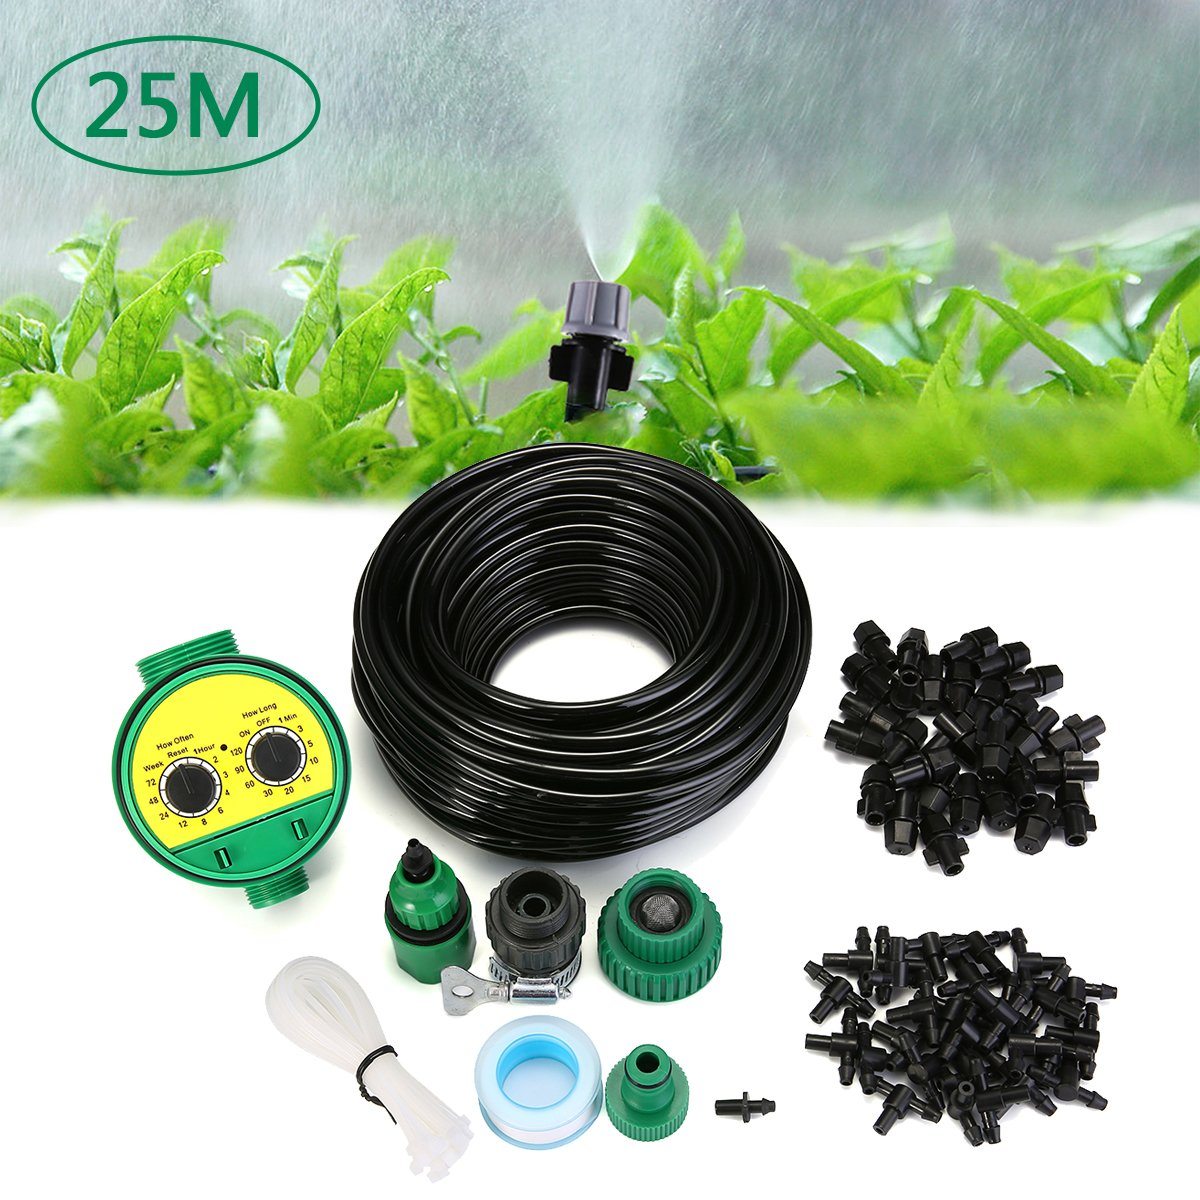 AgSivo Micro Flow Drip Watering Irrigation Adjustable Misting Kits System Self Plant Garden Hose Automatic Watering Kits